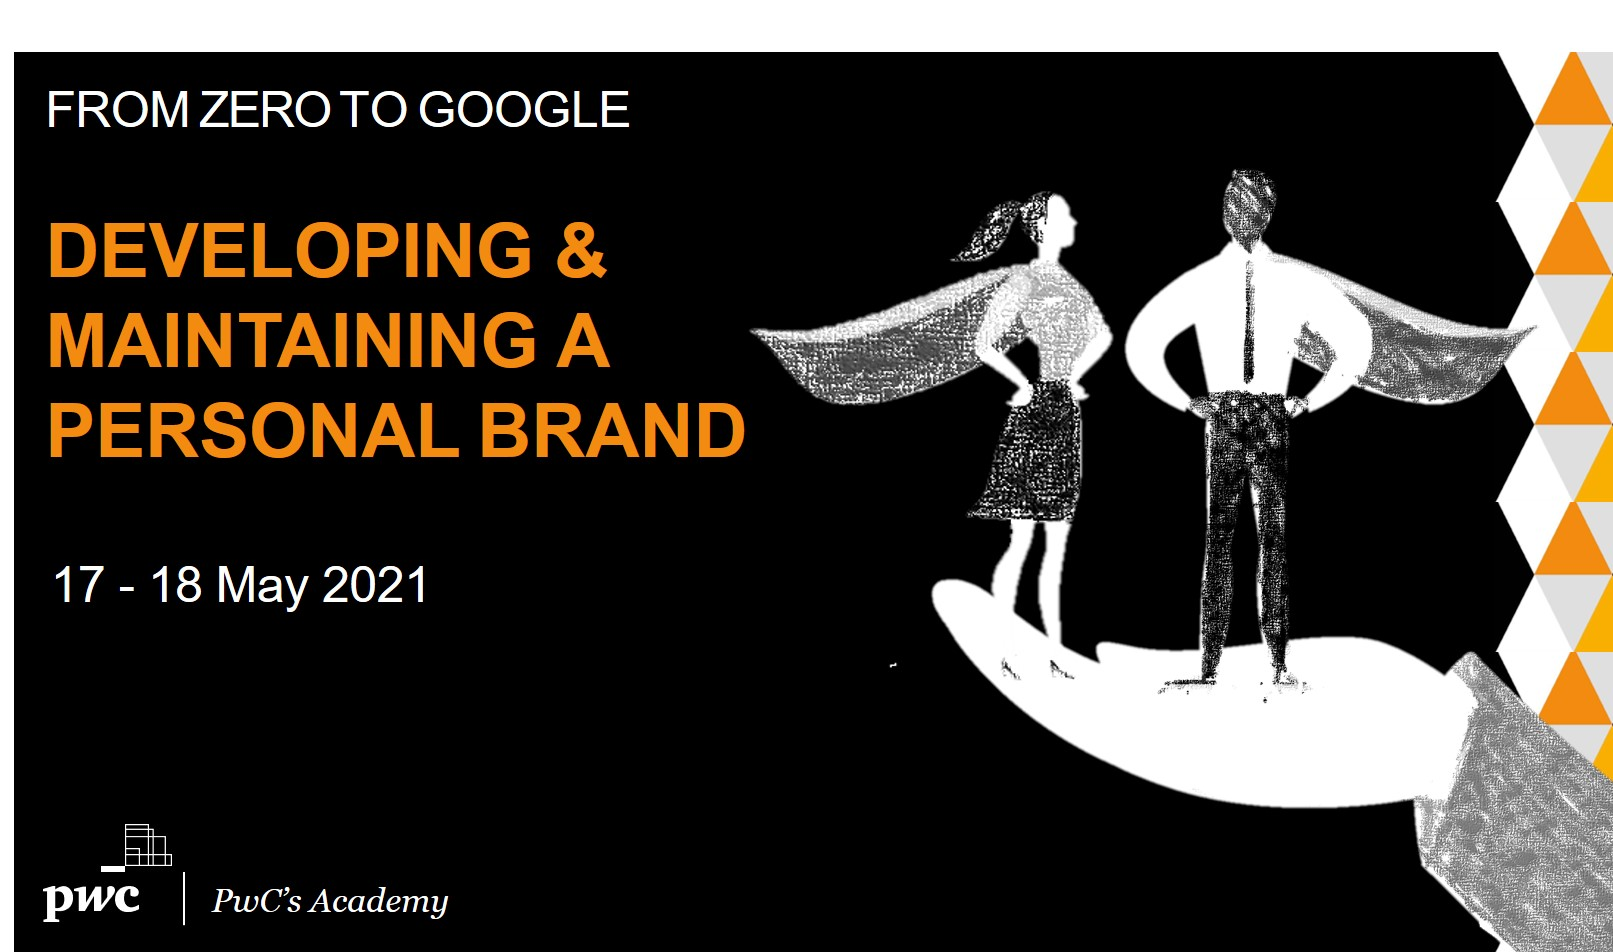 Developing and Maintaining a Personal Brand workshop will take place on 17-18 May by PwC's Academy